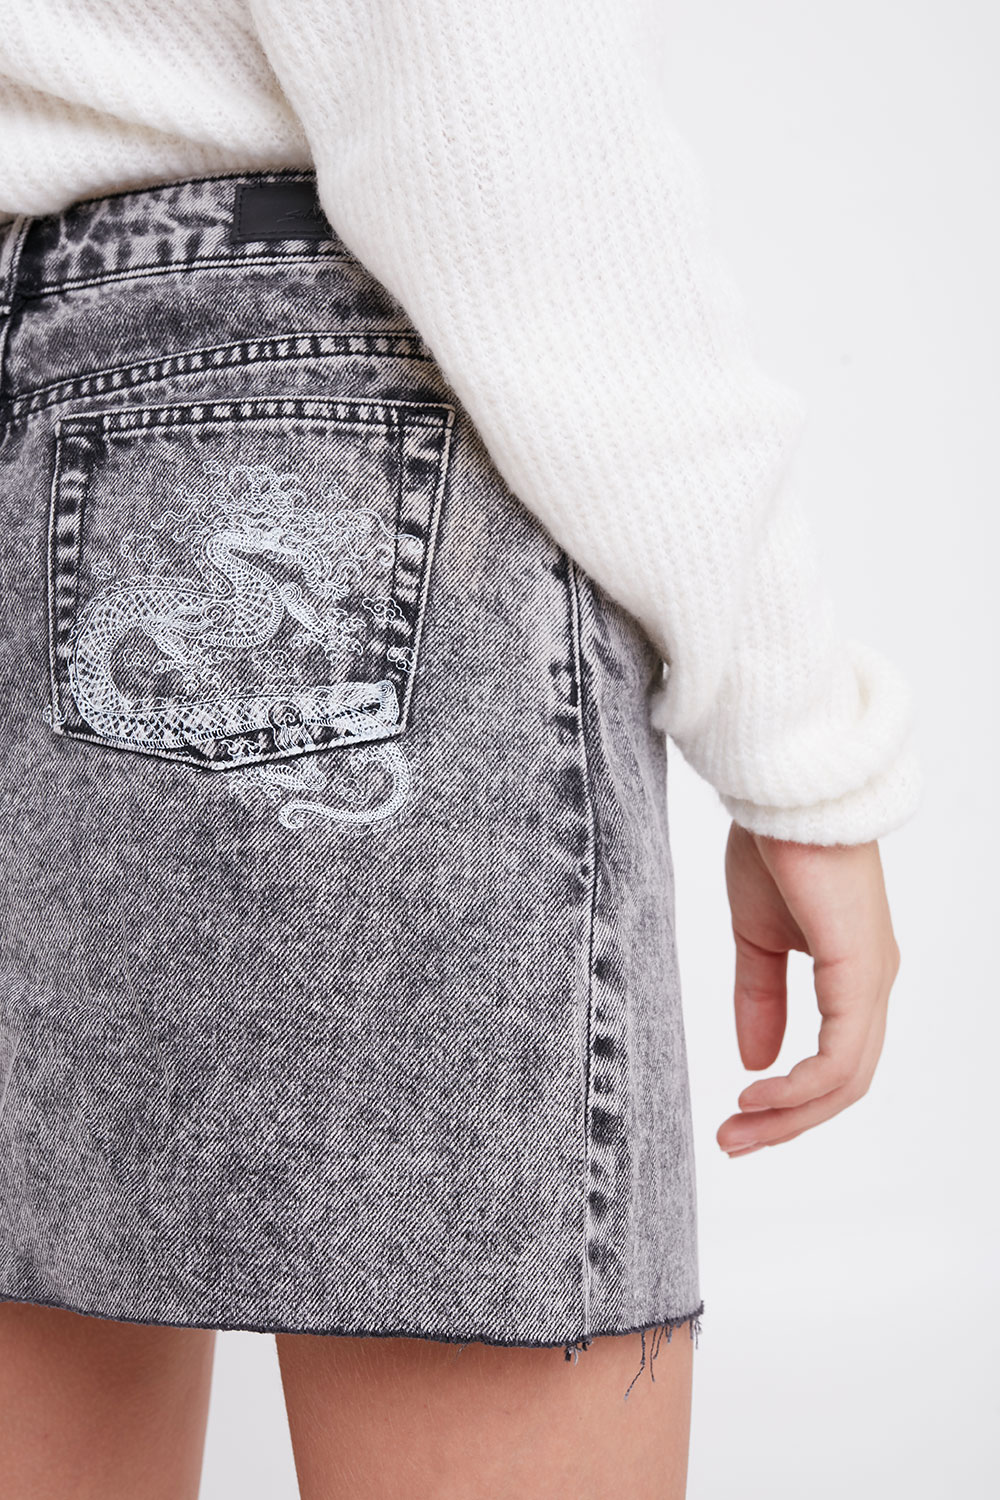 Dragon denim skirt